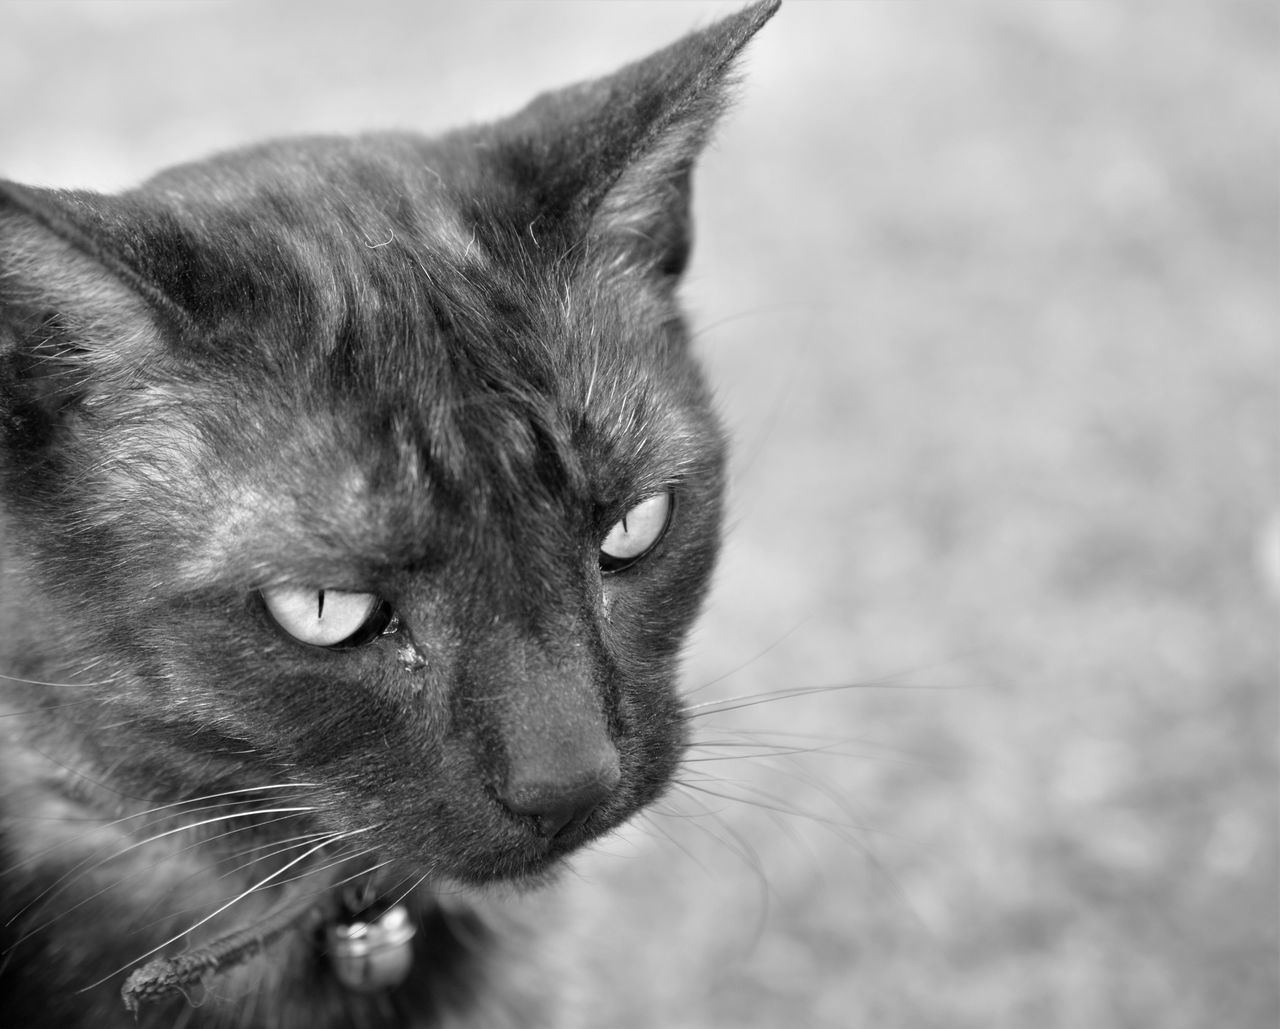 one animal, animal themes, domestic cat, mammal, feline, focus on foreground, close-up, domestic animals, animal head, whisker, no people, pets, day, outdoors